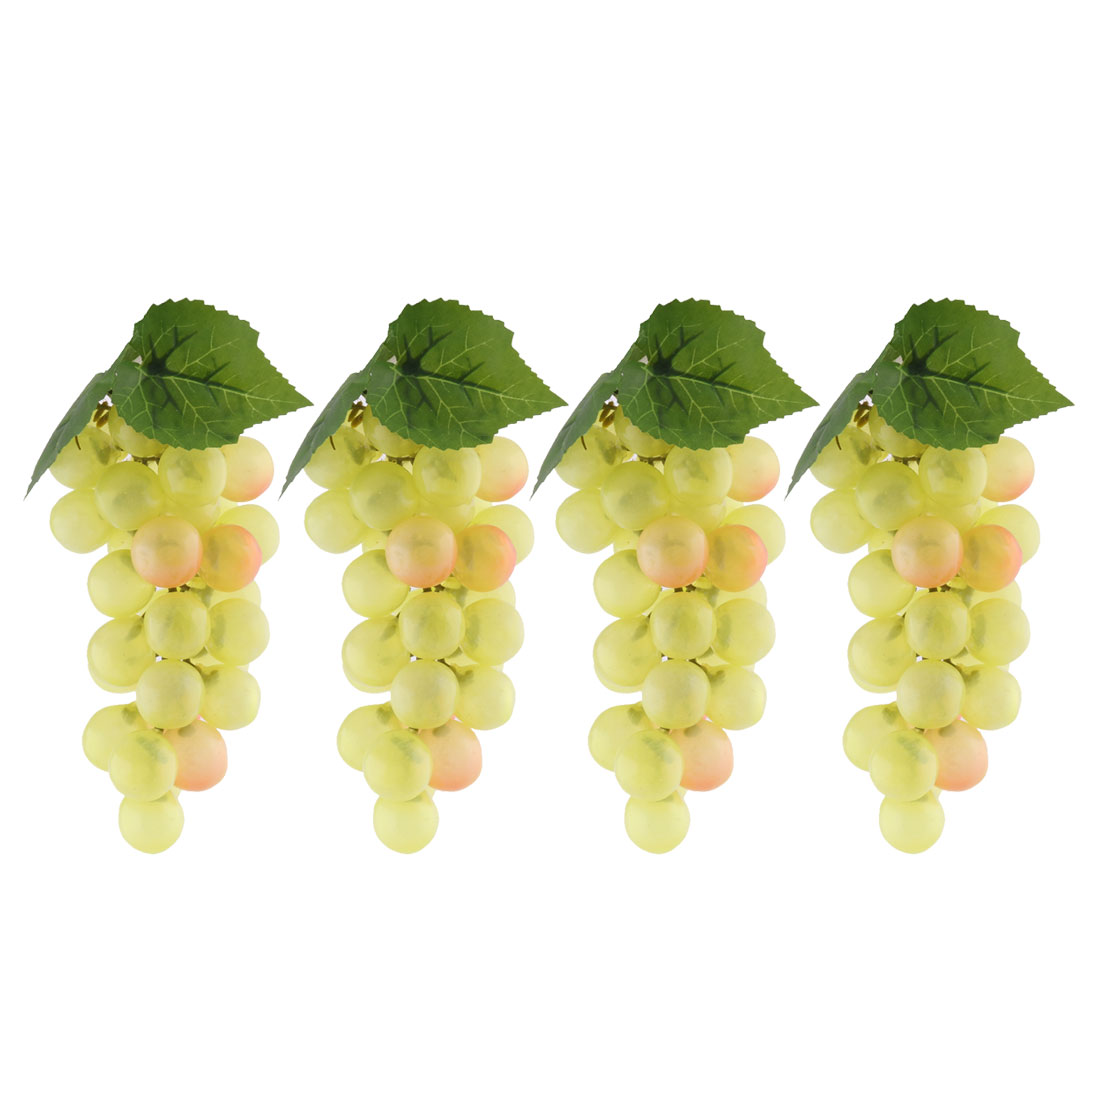 Home Desk Decor Plastic Artificial Grape Designed Emulation Fruit Light Yellow 4pcs